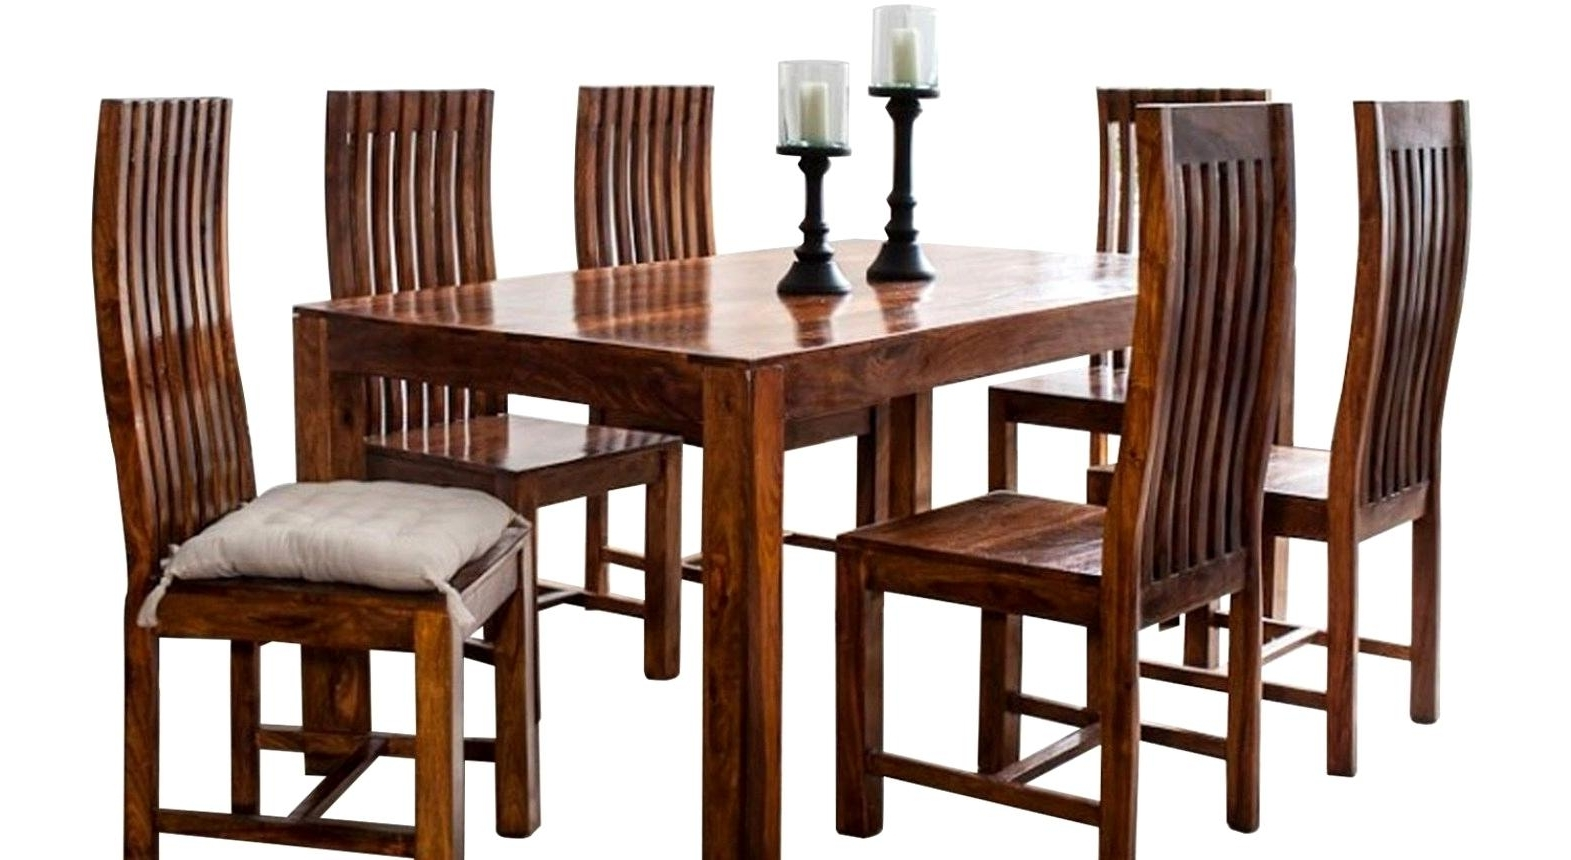 Indian Wood Dining Tables regarding Most Popular Splendid-Sheesham-Wood-Dining-Table-Cm-Dining-Table-Indian-And